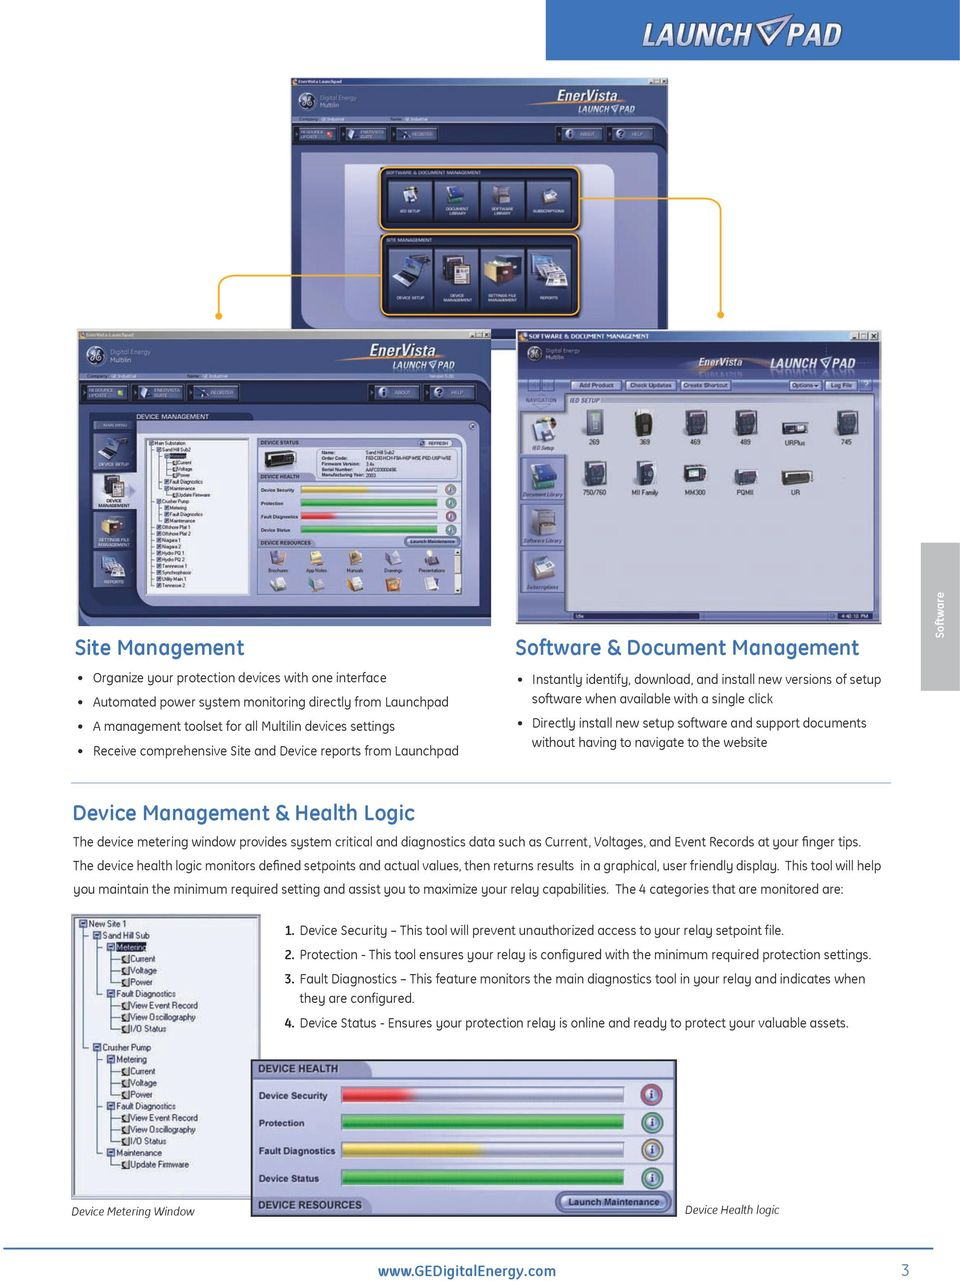 new setup software and support documents without having to navigate to the website Device Management & Health Logic The device metering window provides system critical and diagnostics data such as